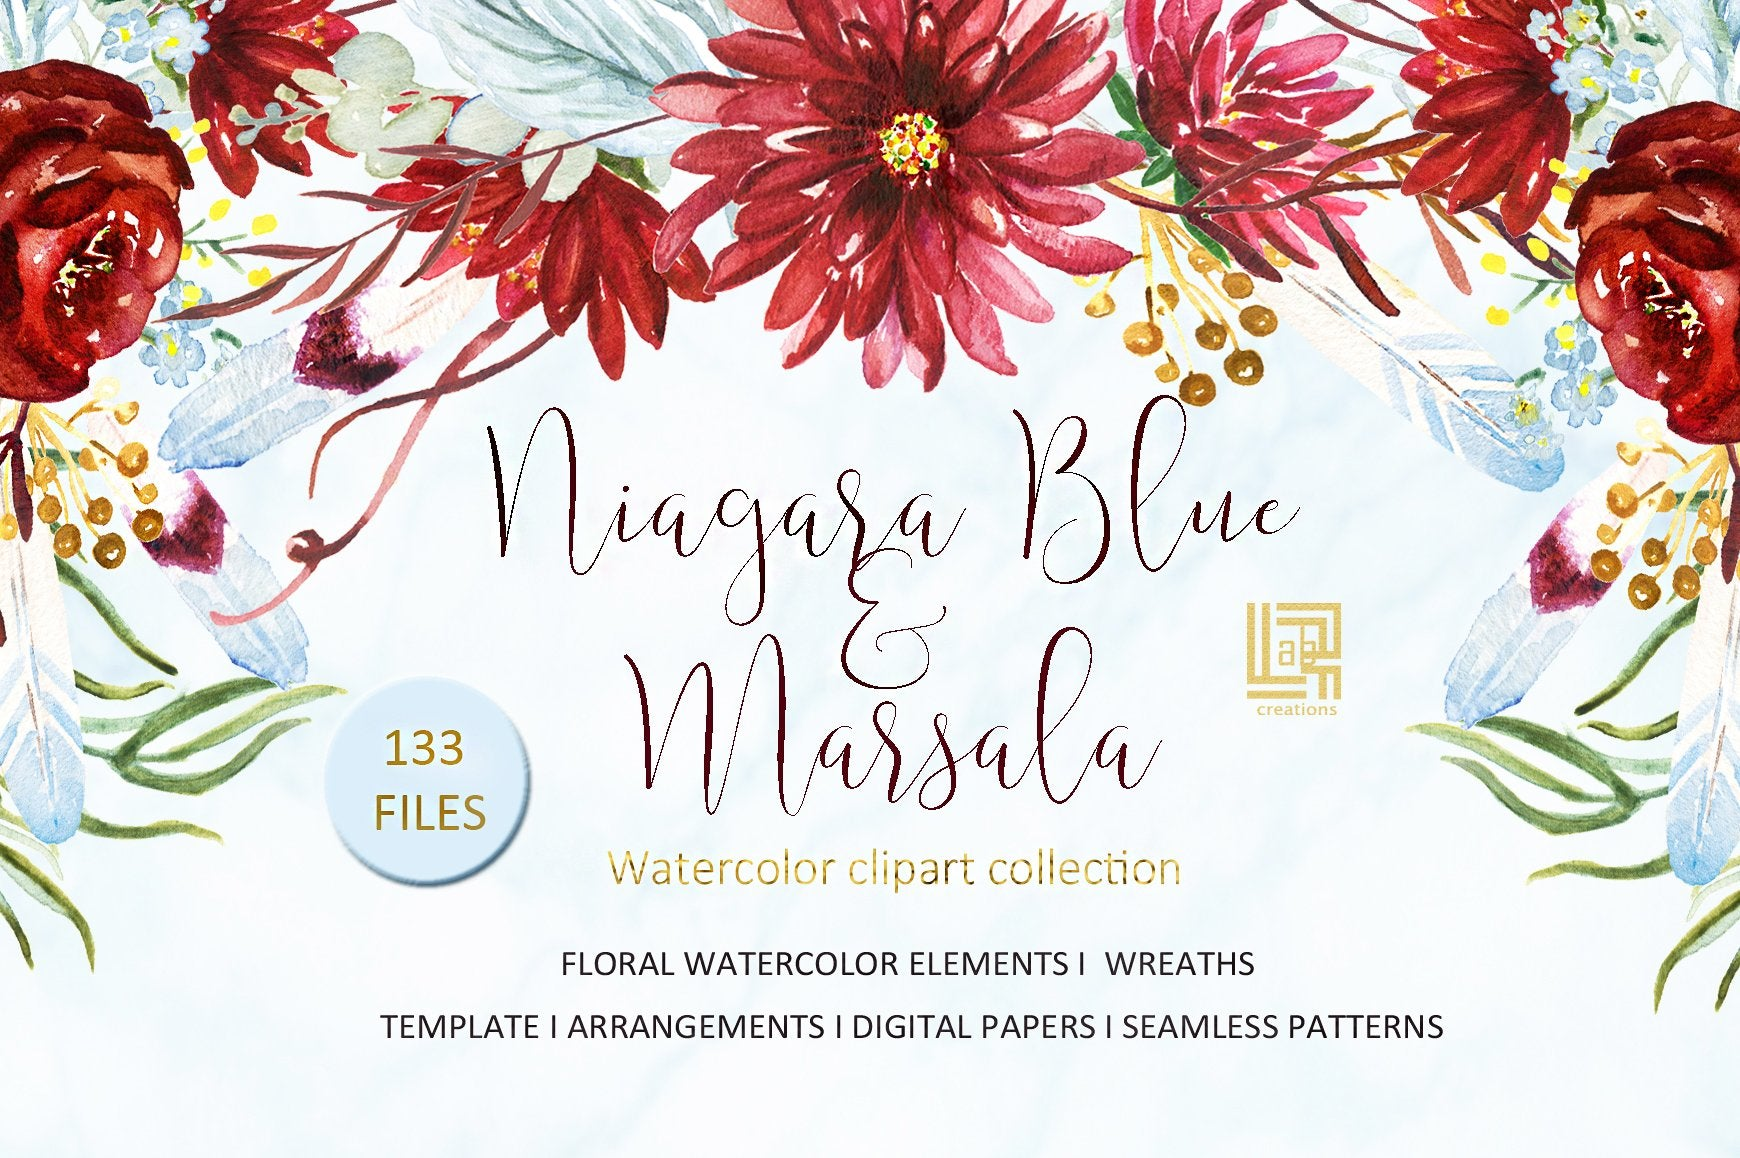 70-In-1 Mega Watercolor Graphics Bundle-Graphics-Artixty